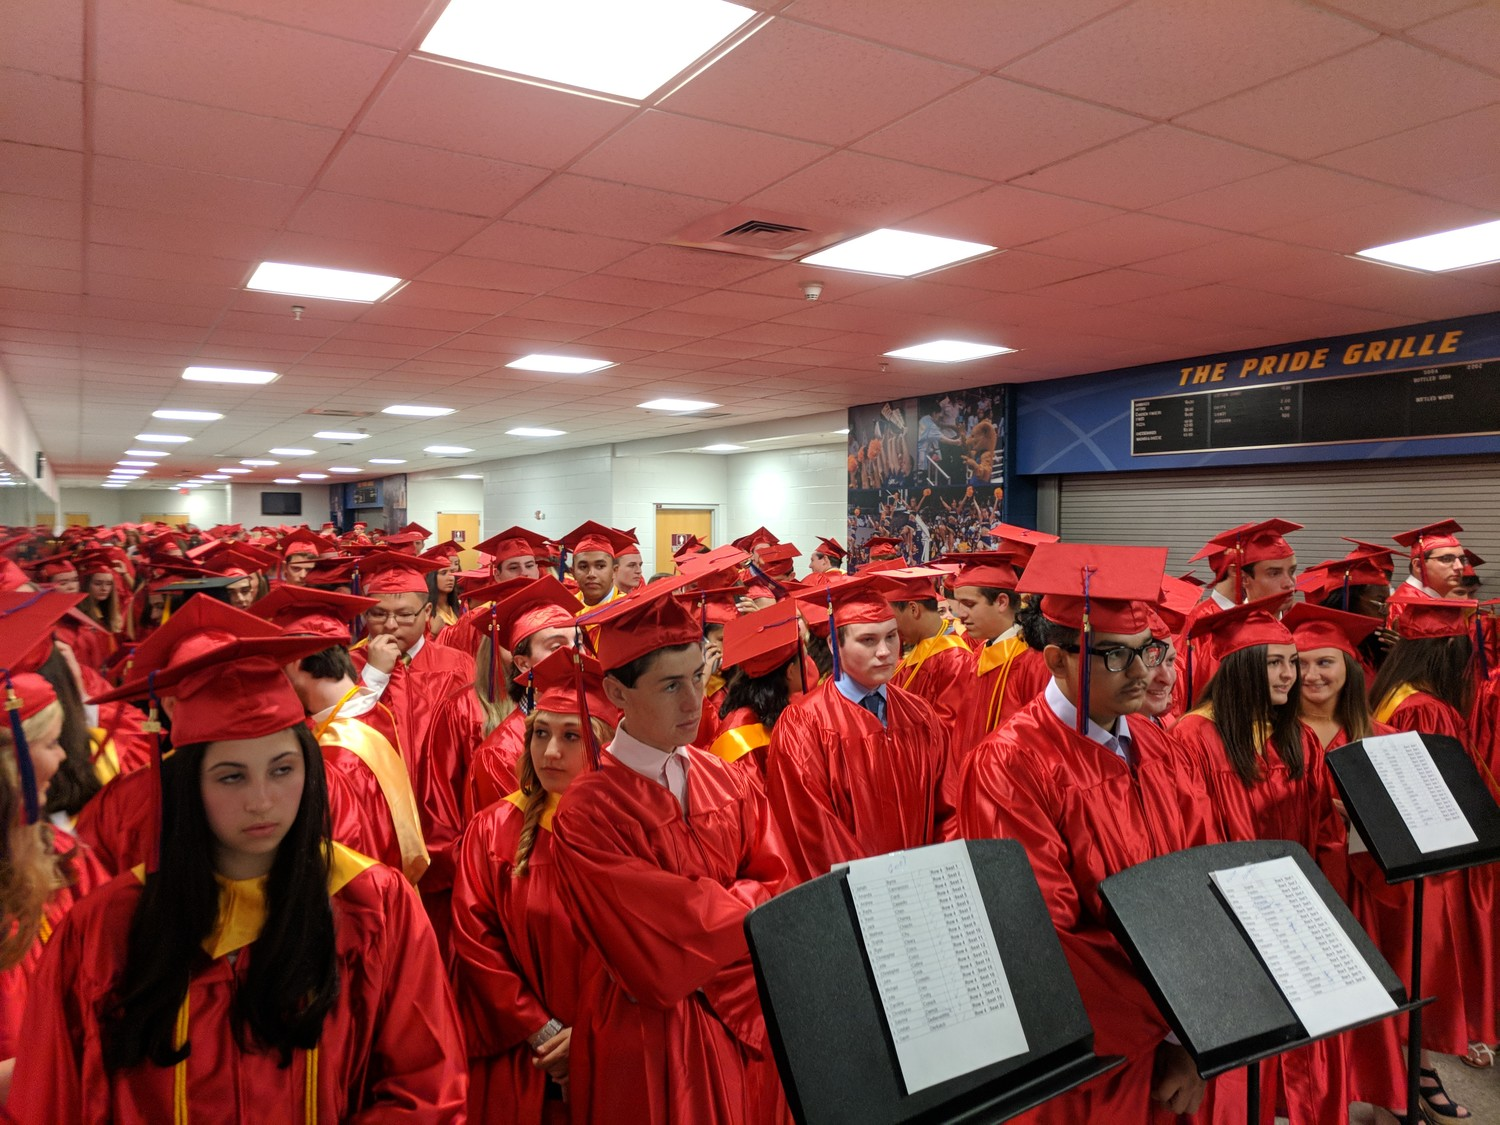 A sea of soon-to-be alumni prepared for their graduation ceremony at Hofstra University on June 22.